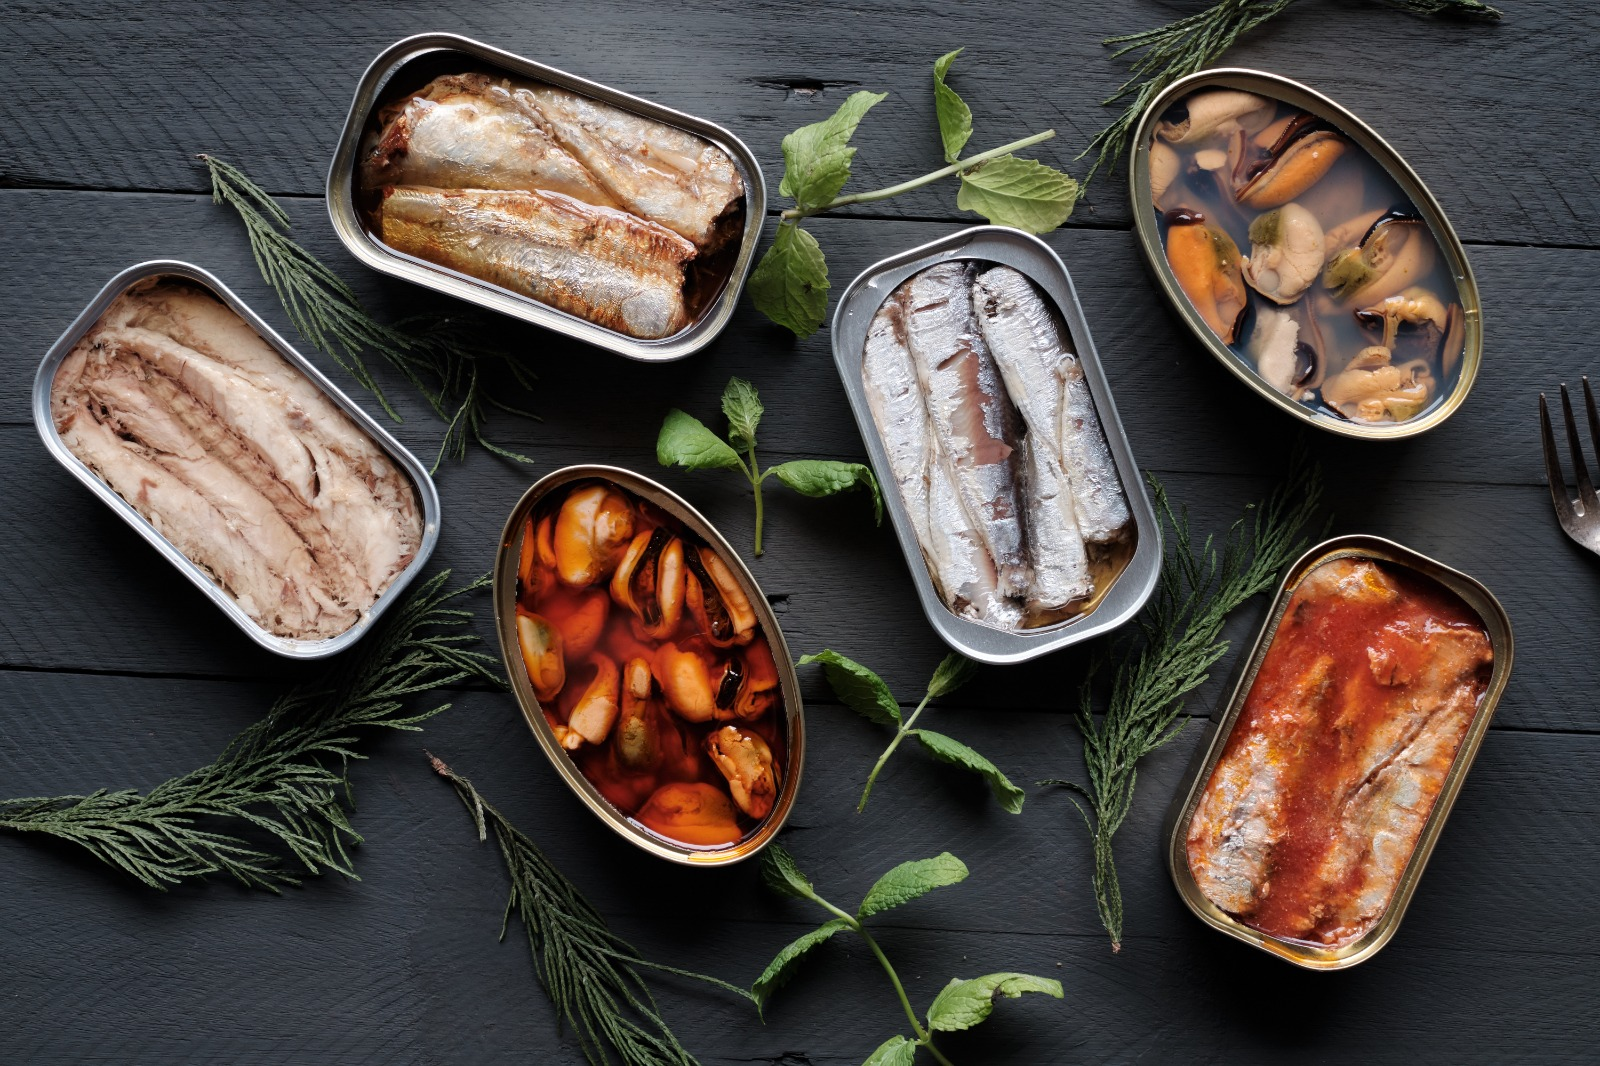 Canned Seafood The Gourmet Corp